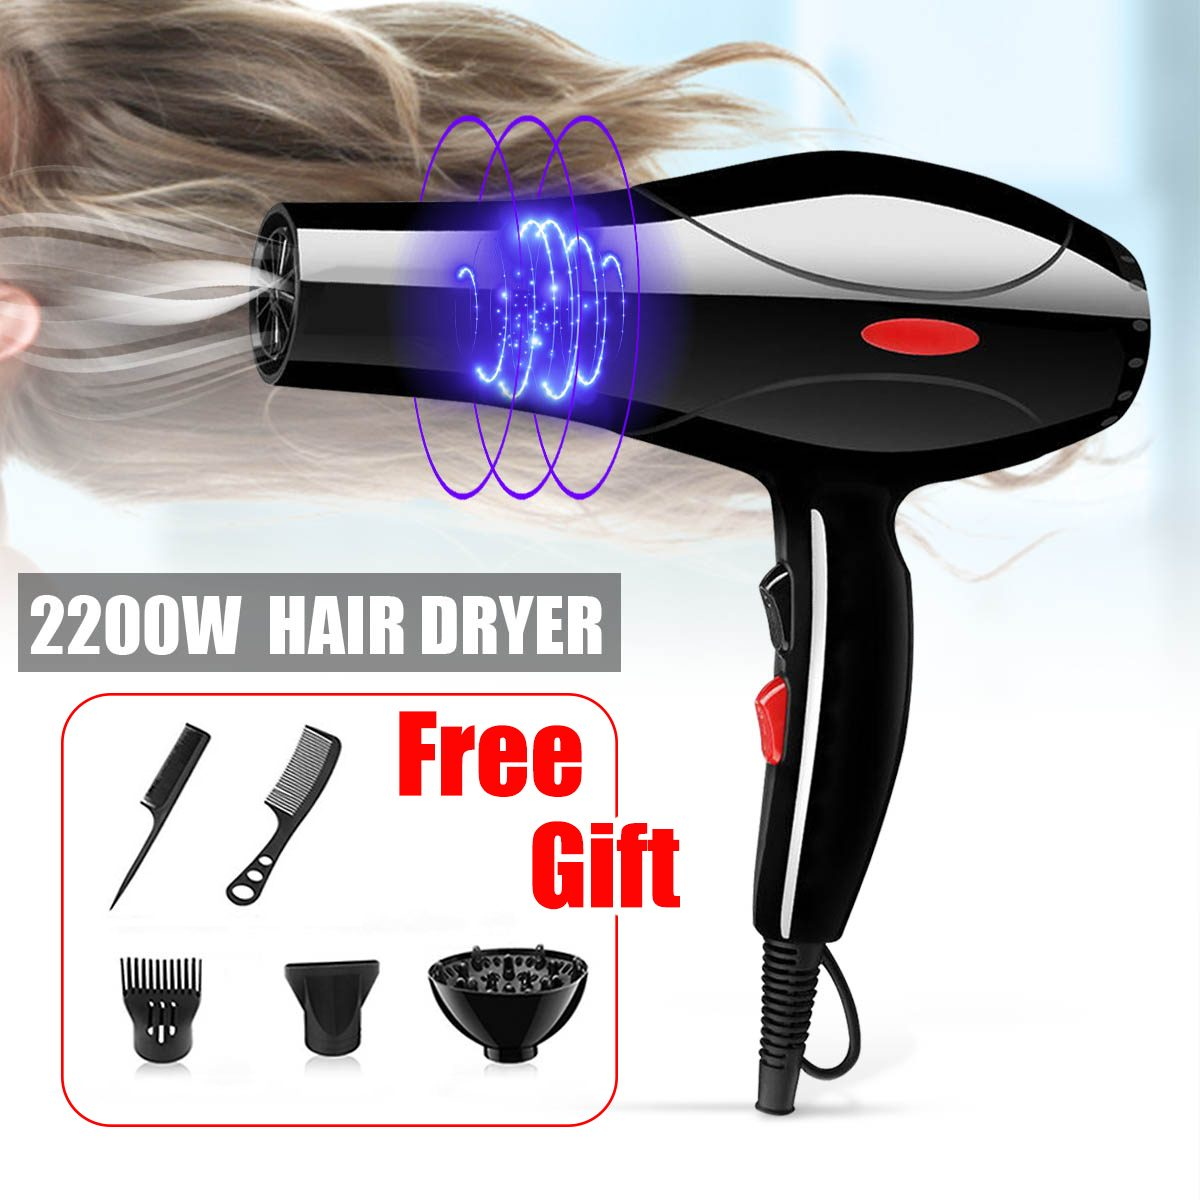 EU/US Plug 2200W Hot And Cold Wind Hair Dryer Blow dryer Hairdryer Styling Tools For Salons and household use